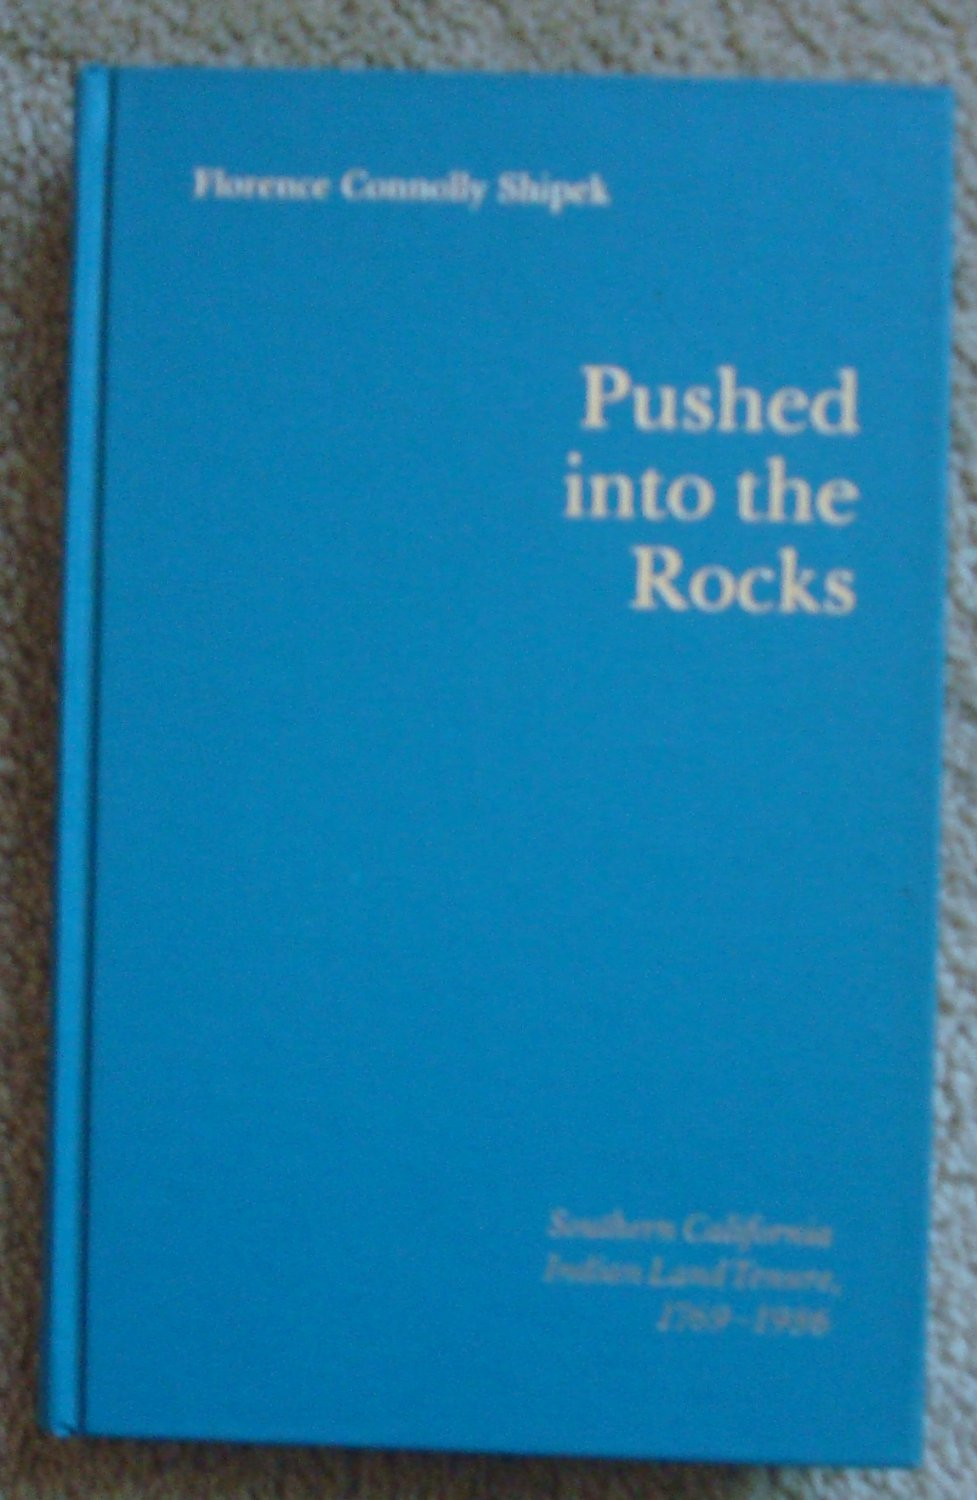 Pushed Into the Rocks: Southern California Indian Land Tenure 1769-1986